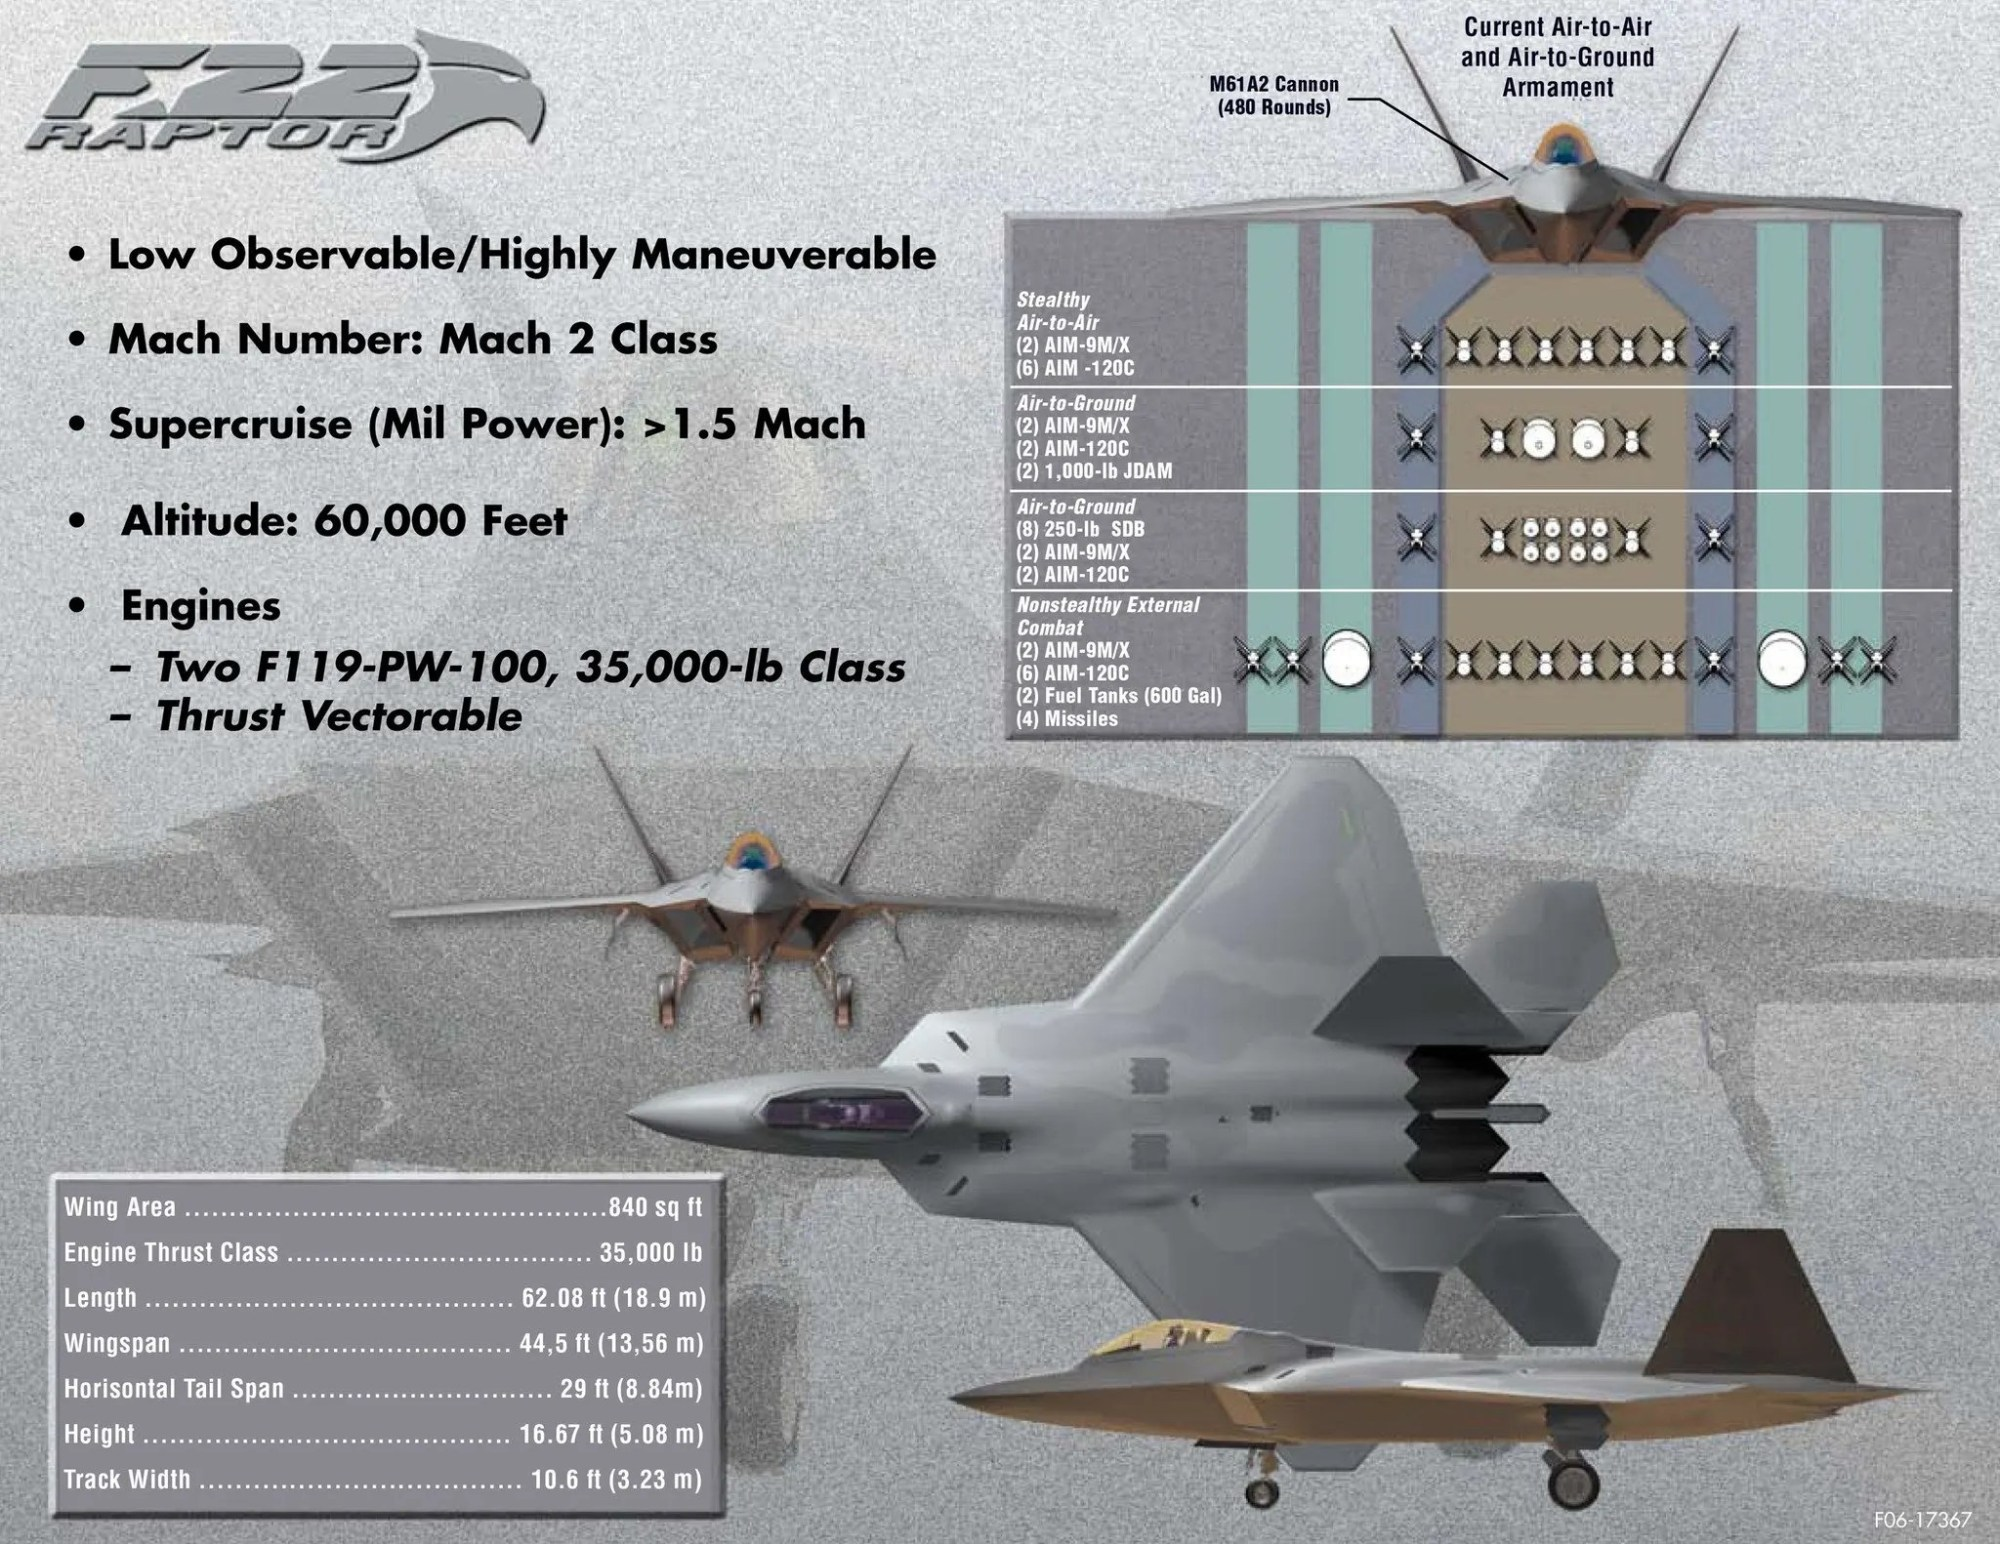 hight resolution of the lockheed martin boeing f 22 raptor is a single seat twin